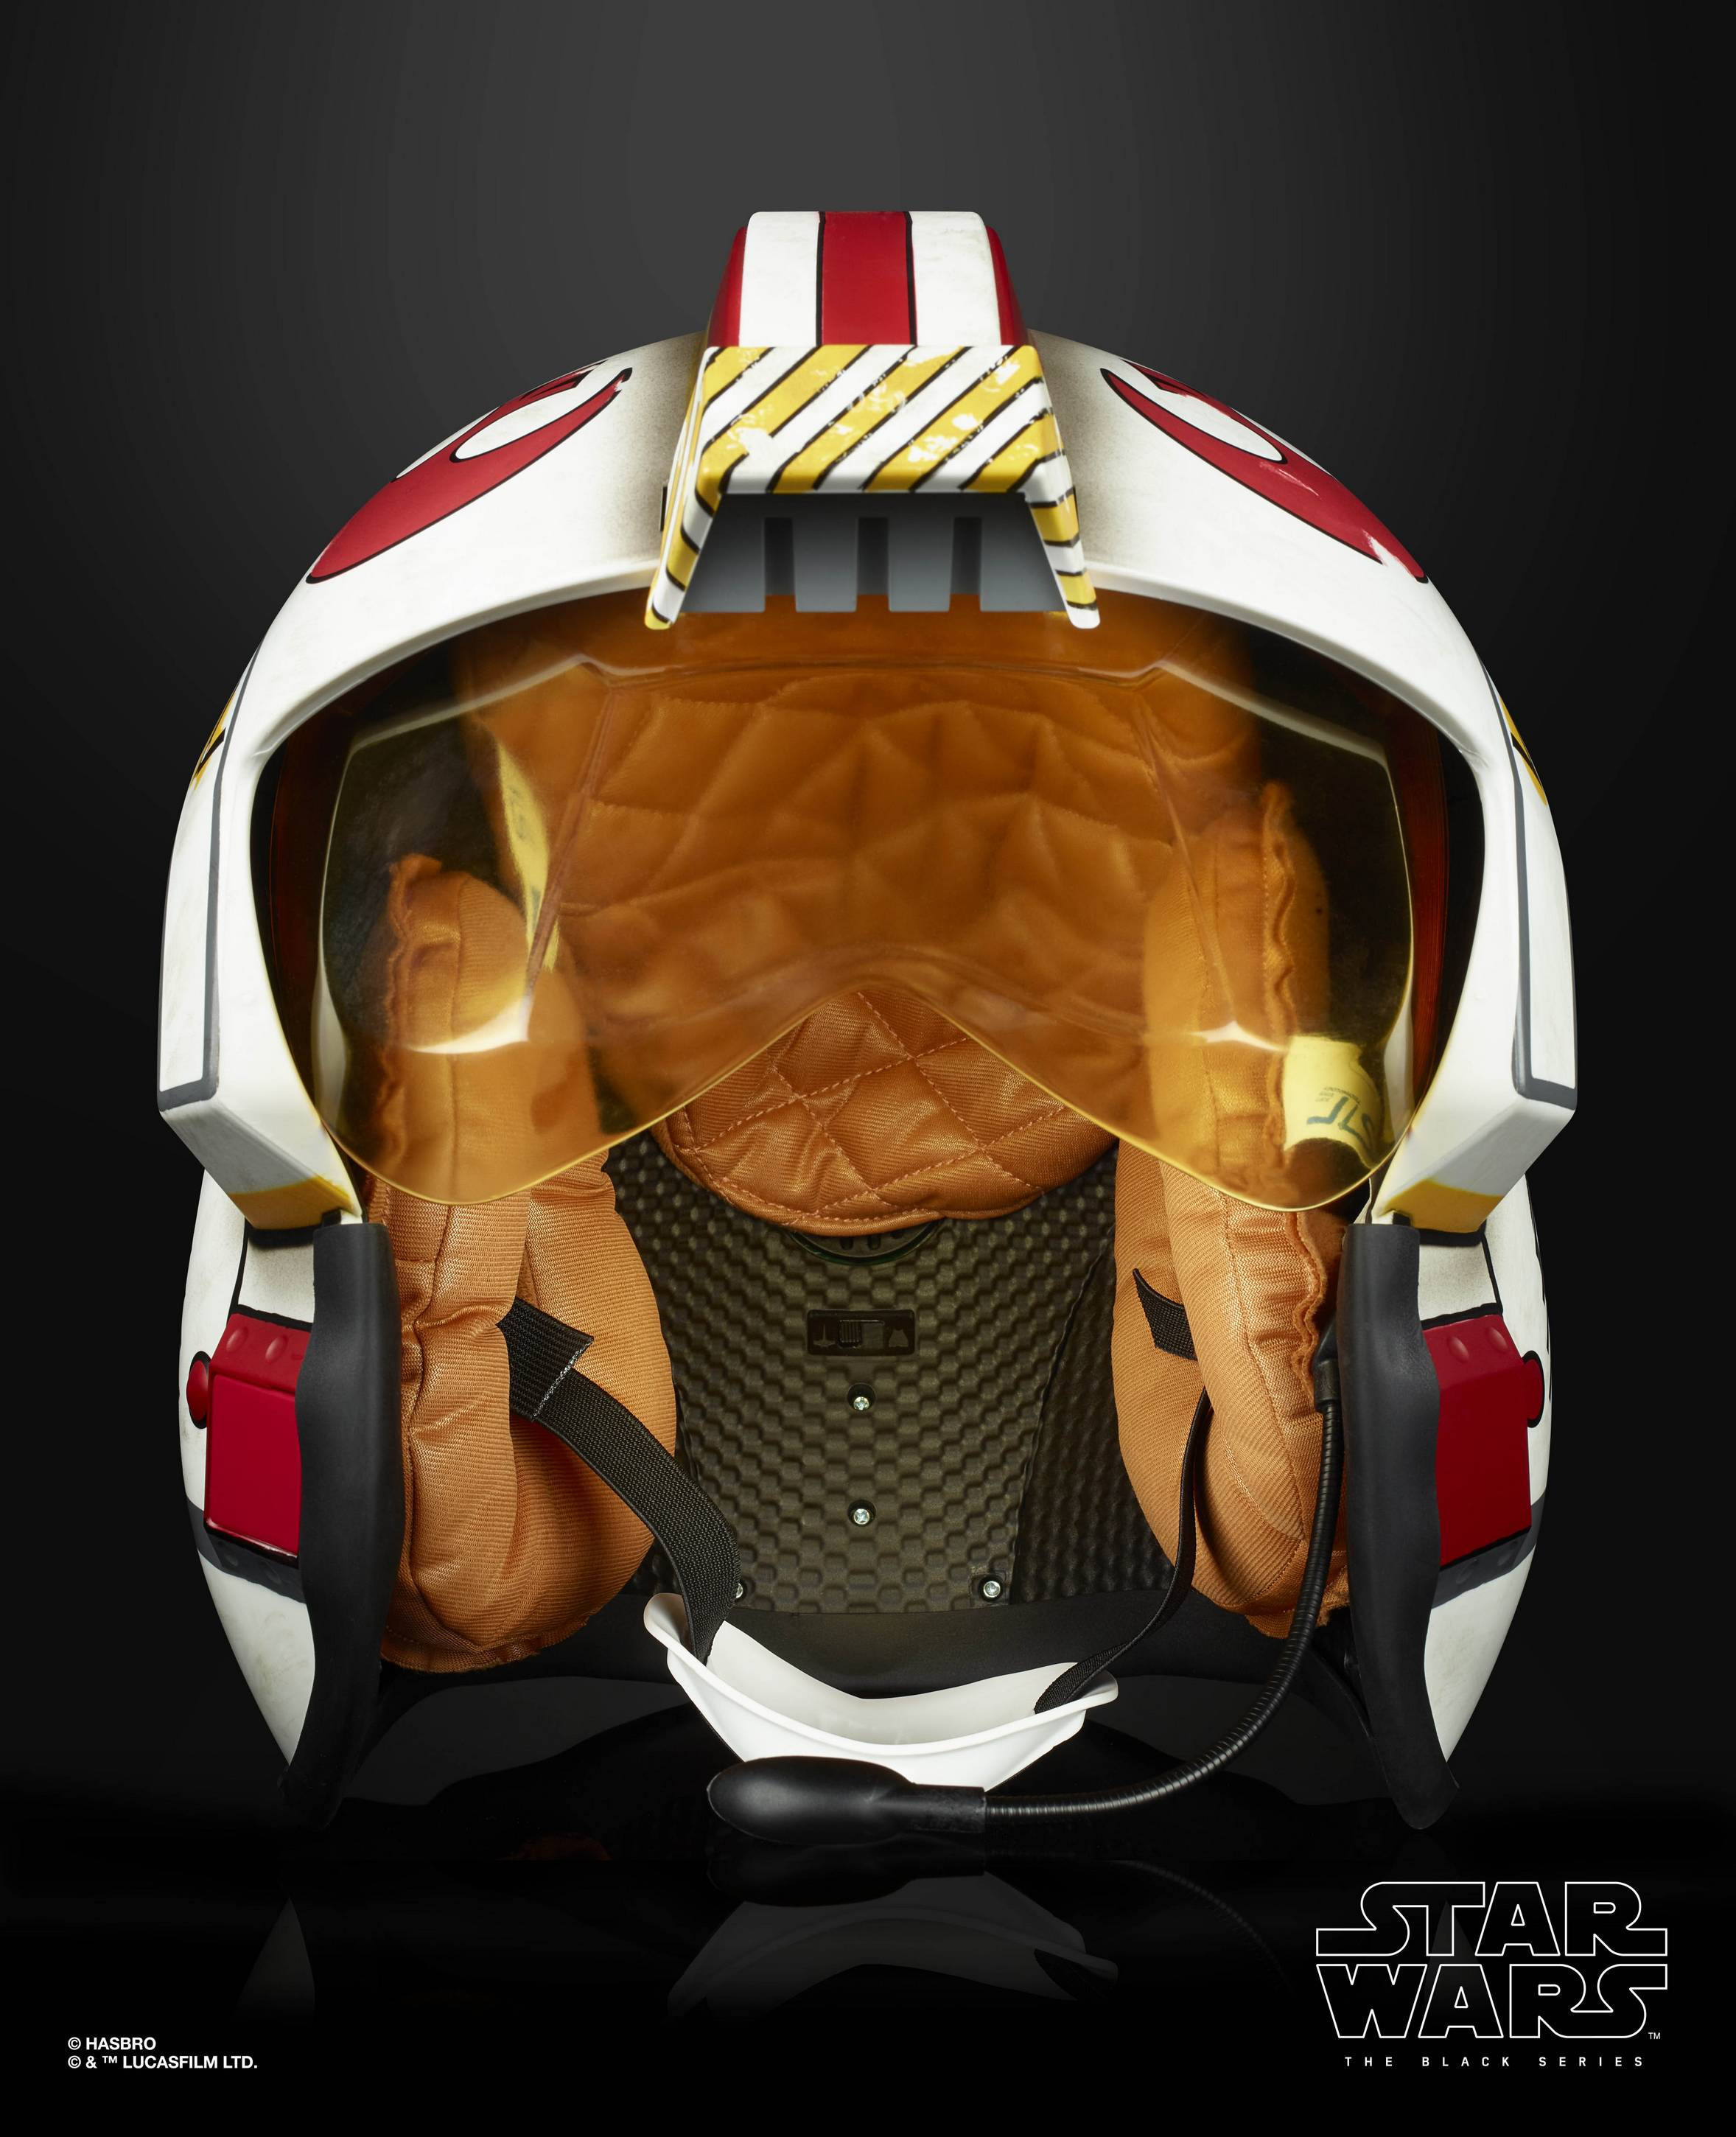 STAR-WARS-THE-BLACK-SERIES-LUKE-SKYWALKER-BATTLE-SIMULATION-ELECTRONIC-HELMET-oop-10.jpg